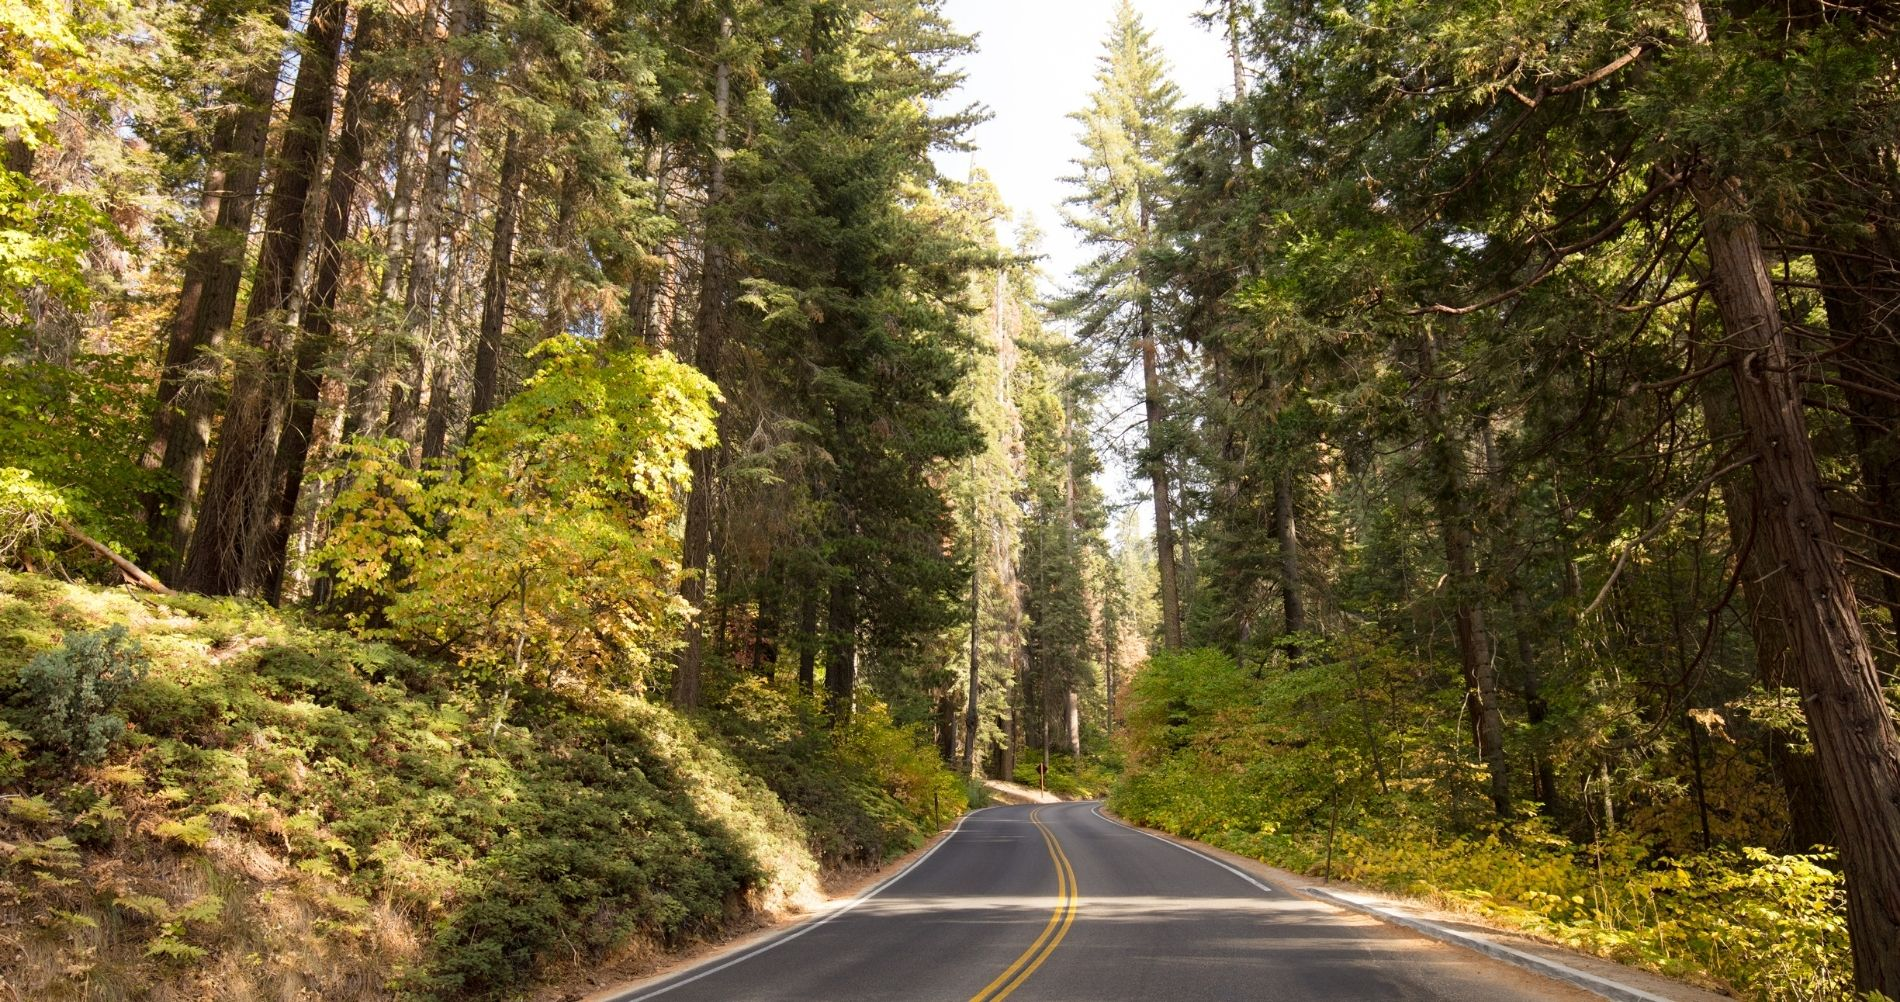 Winding road through the giant redwood forest